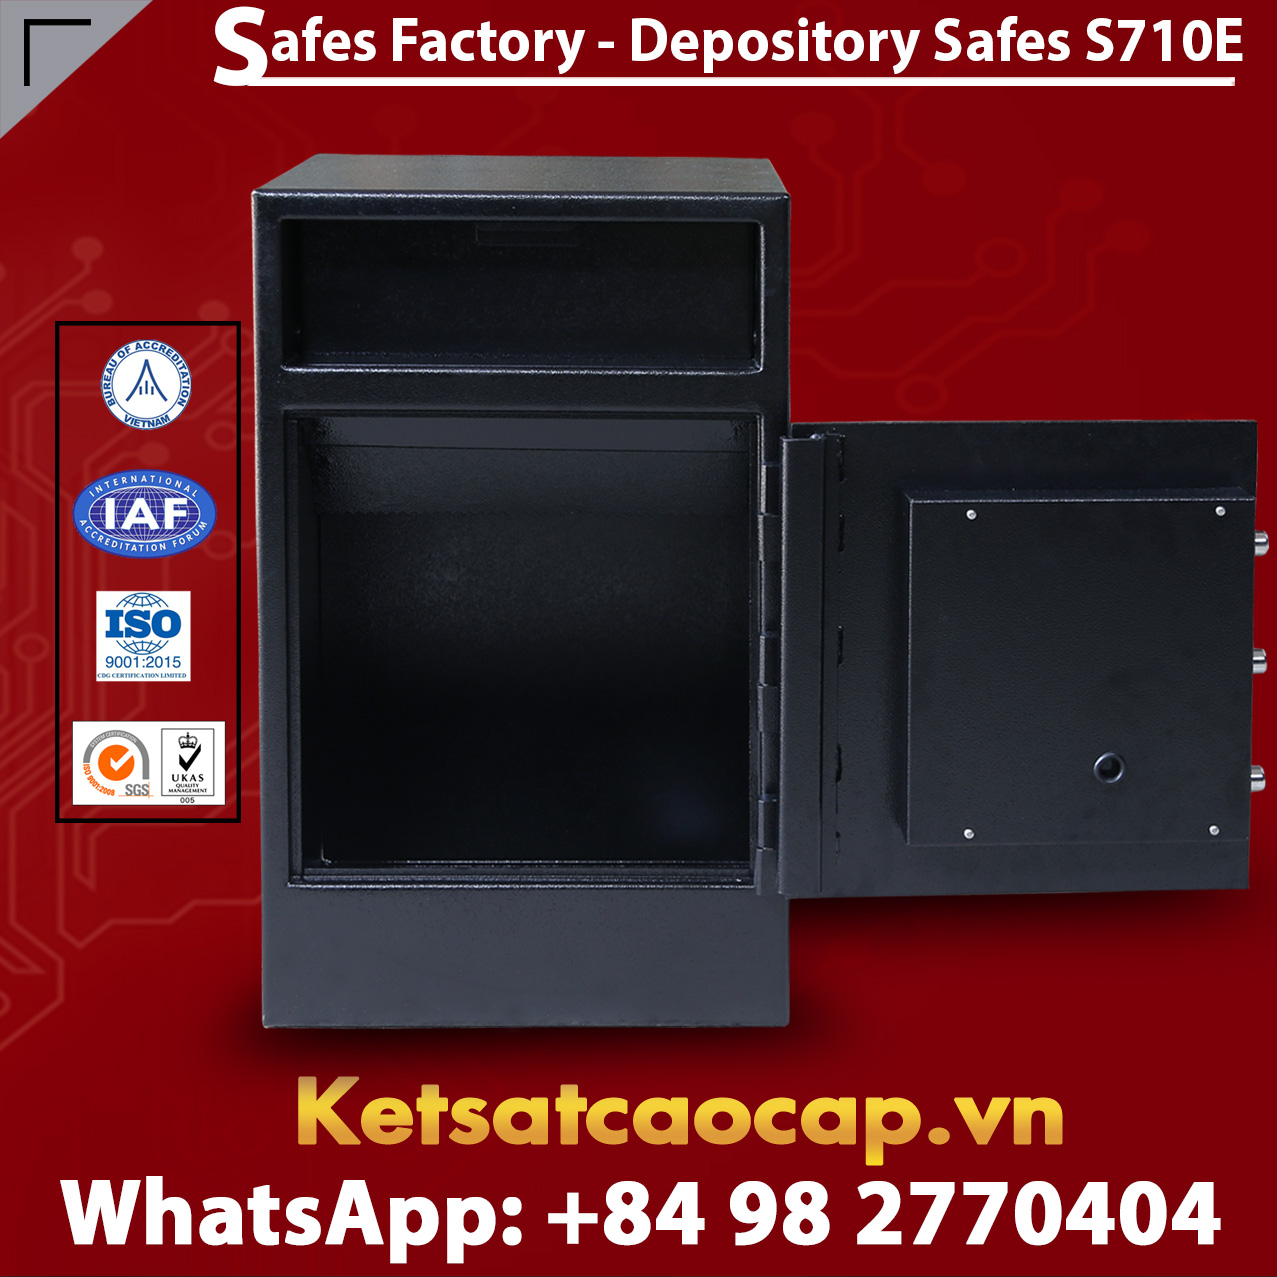 High-security Depository Safes S710E